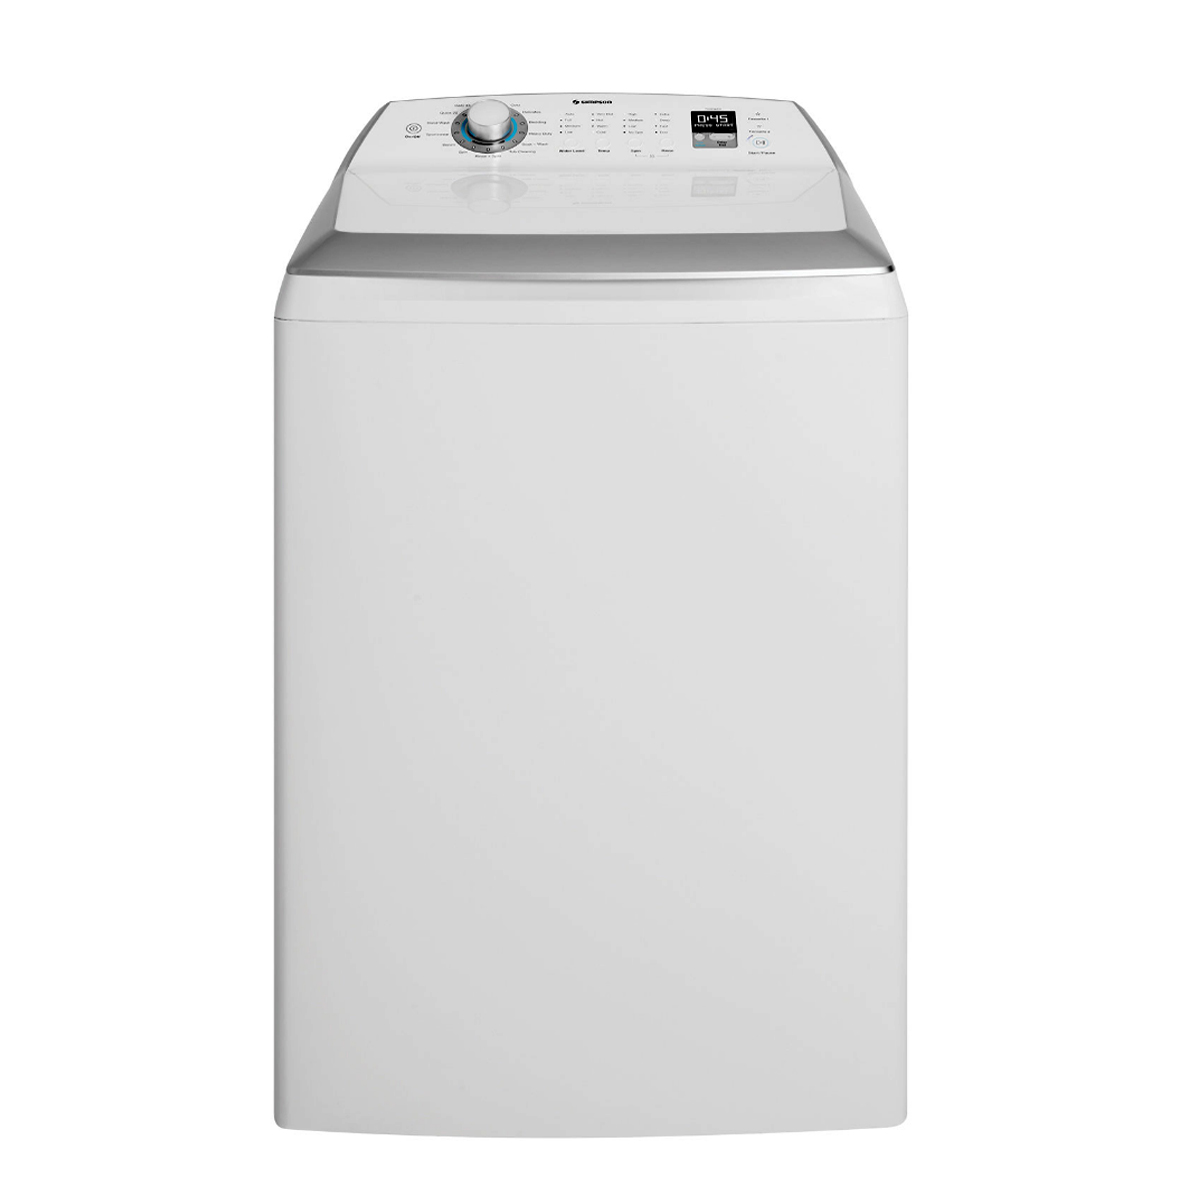 Simpson SWT1023A 10kg Top Load Washer 42929